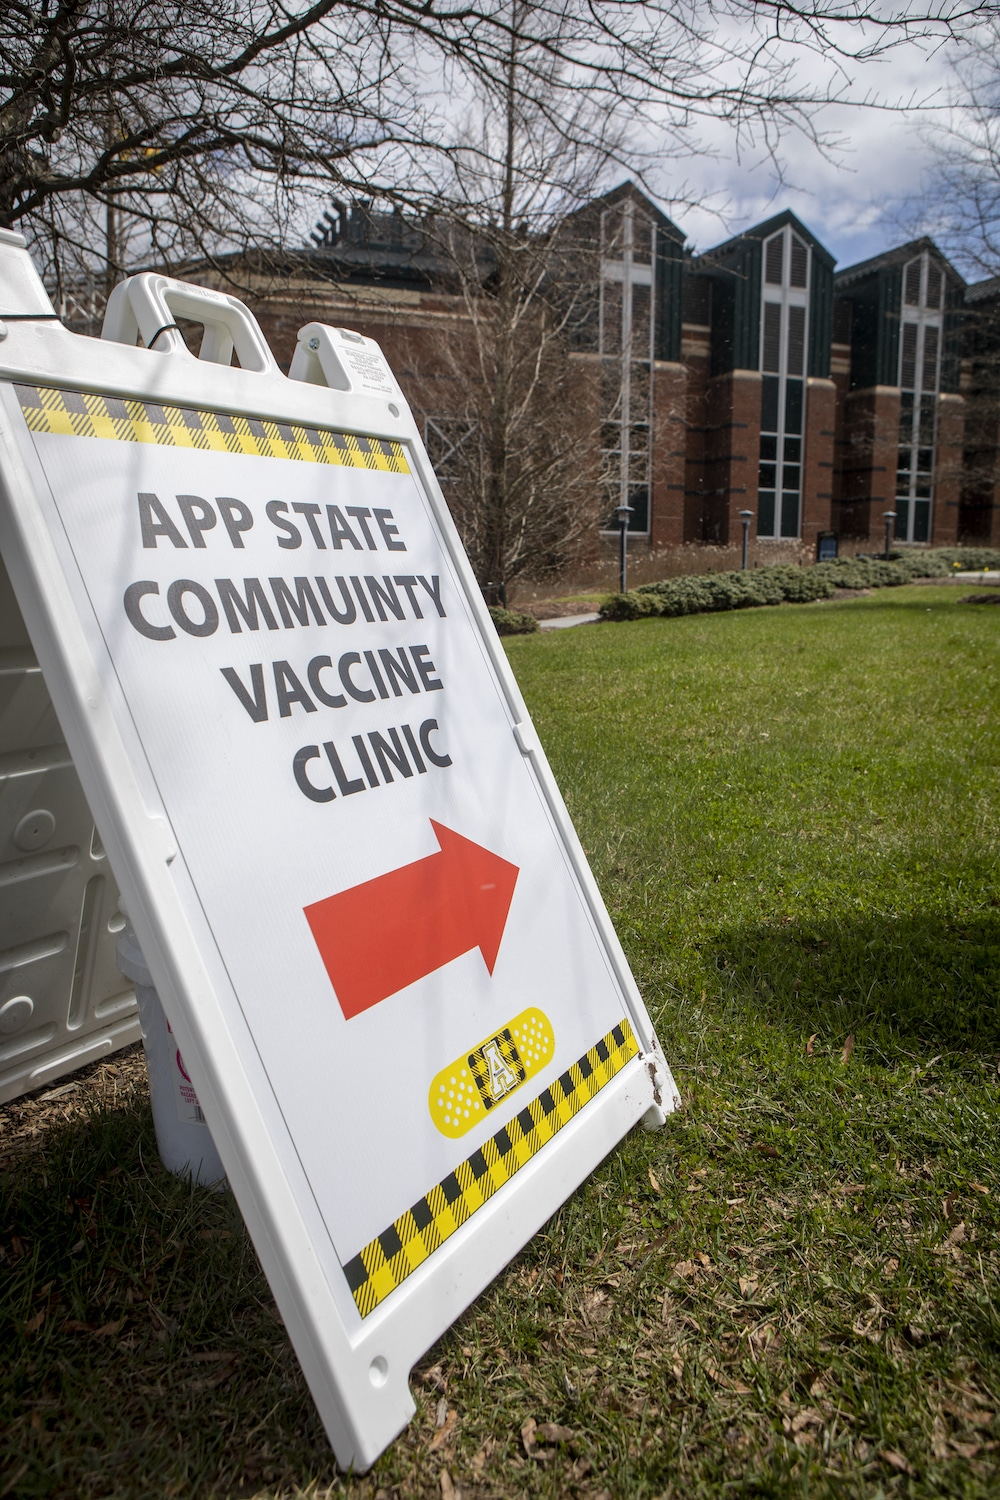 App State to hold community COVID-19 vaccine clinic April 15, 2021